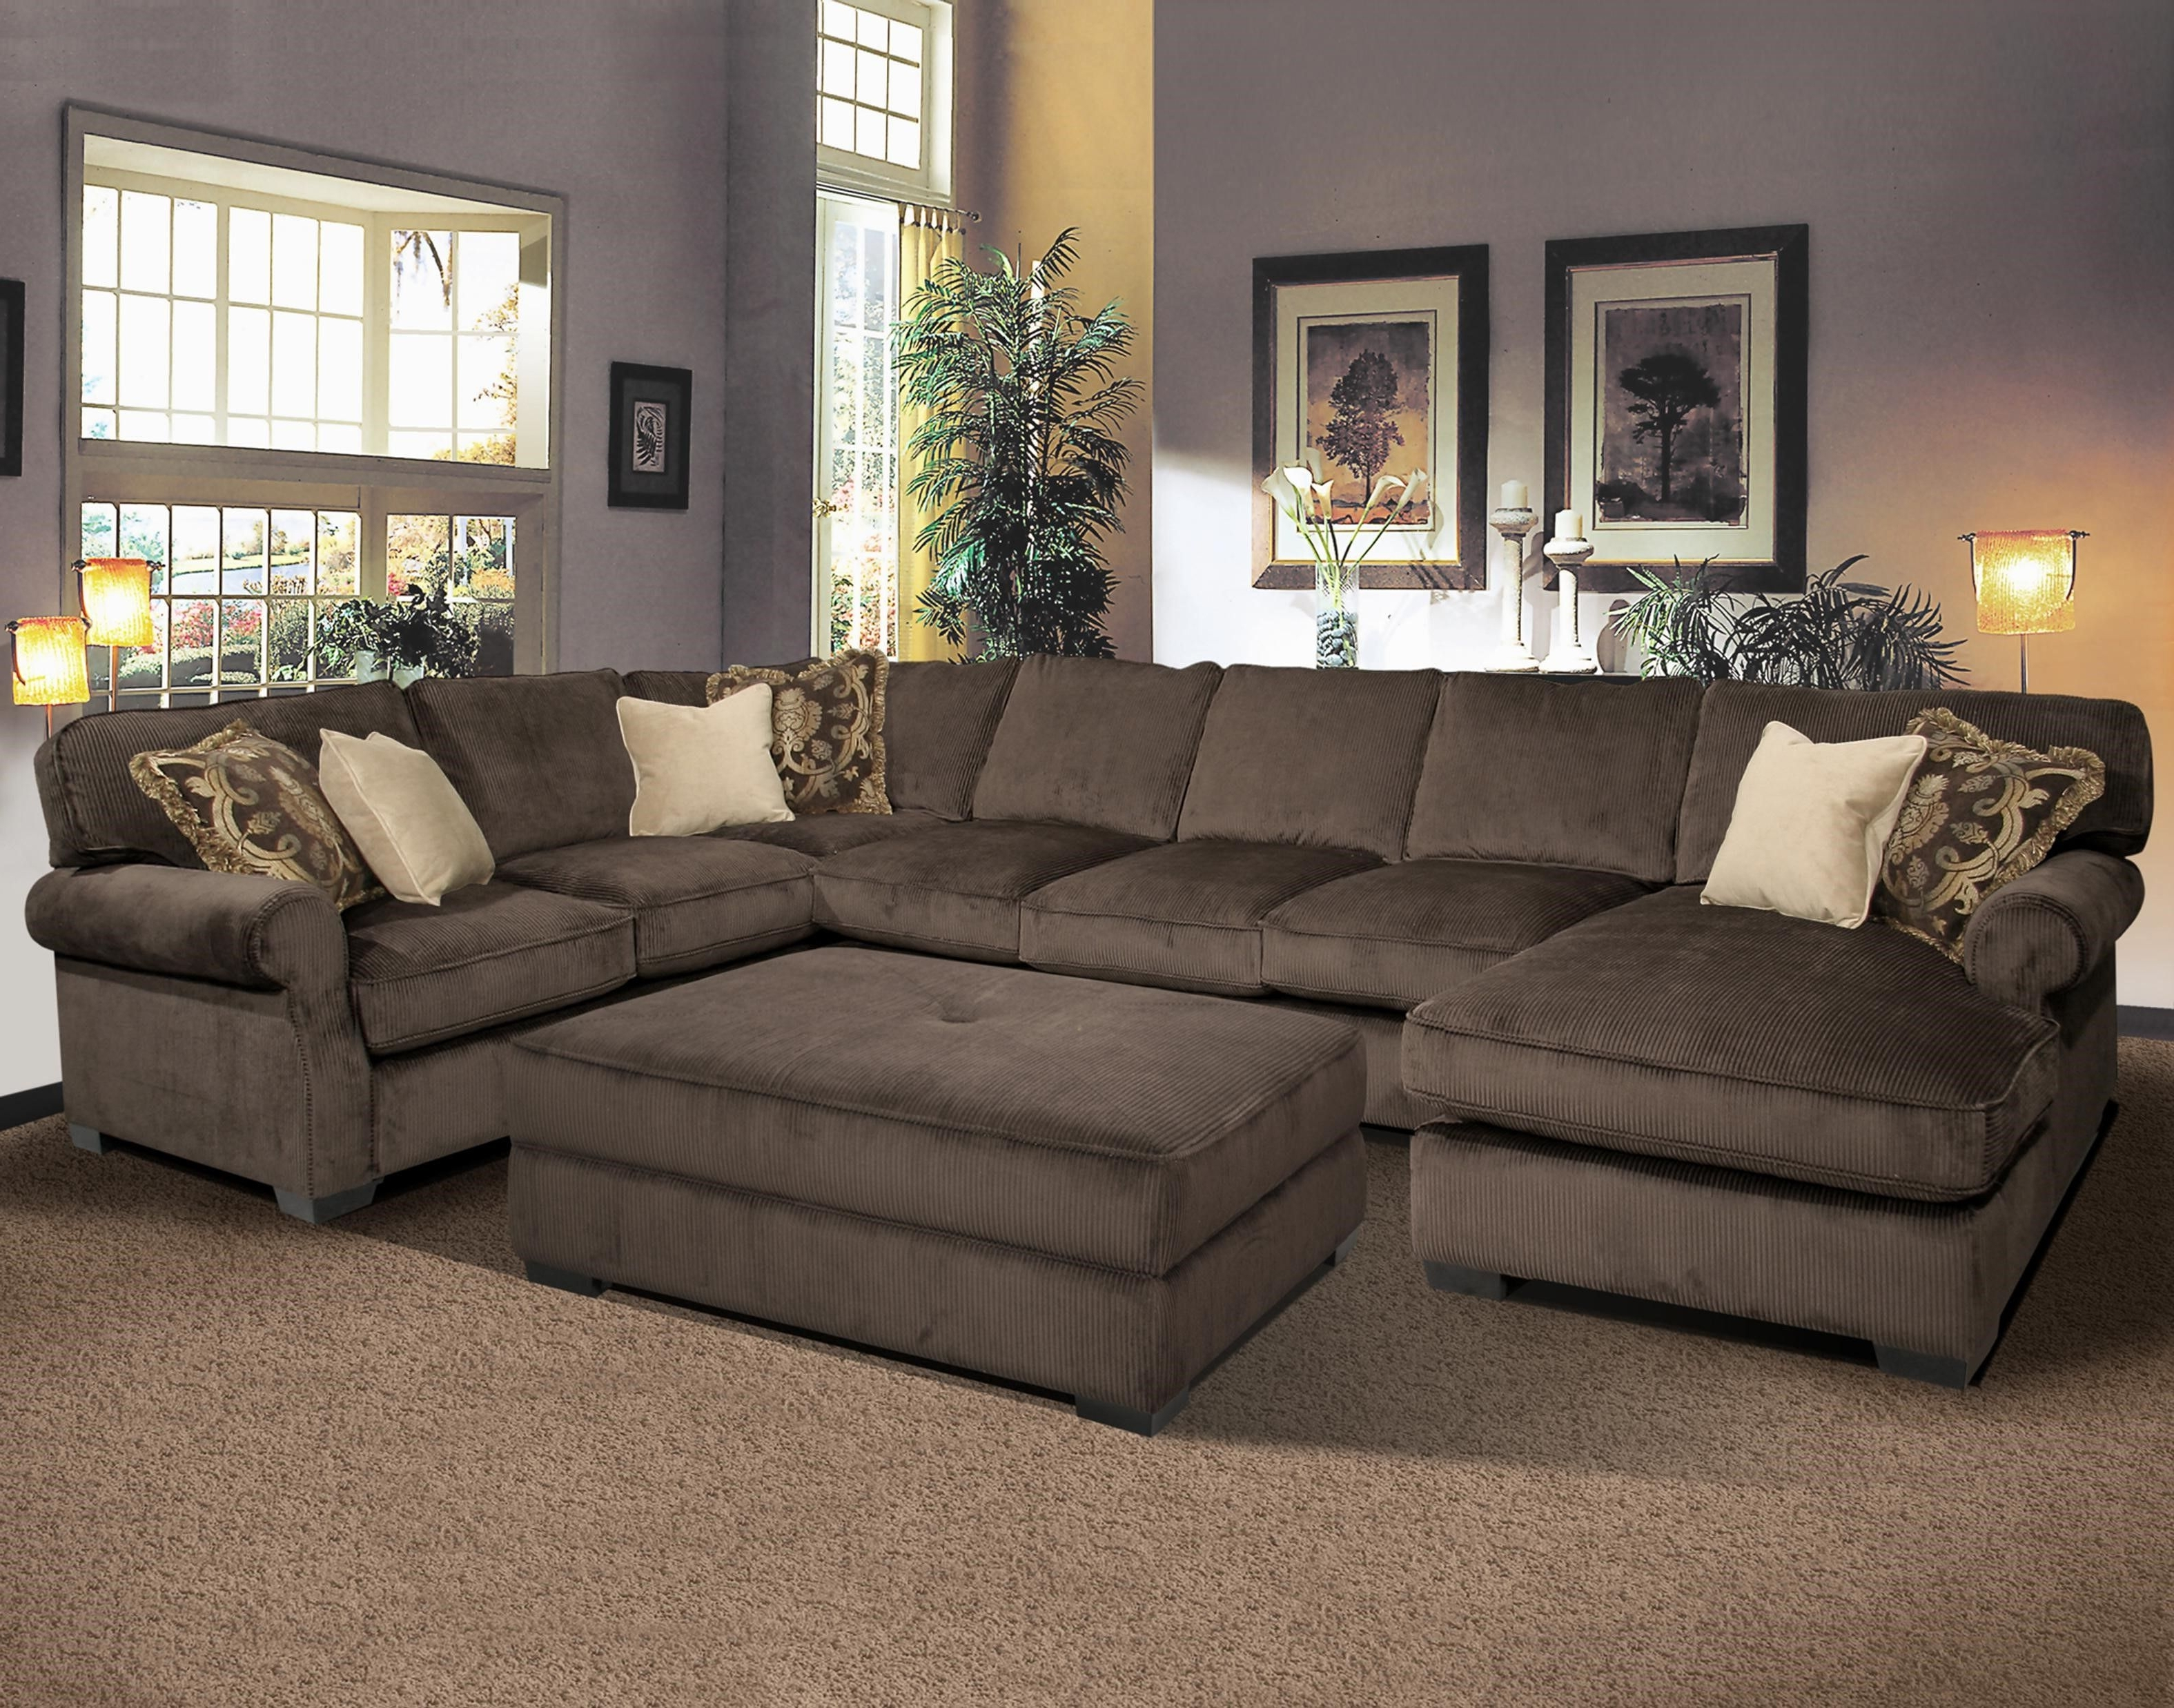 Well Known Comfortable Living Room Sofas Design With Elegant Overstuffed Inside Tulsa Sectional Sofas (View 19 of 20)